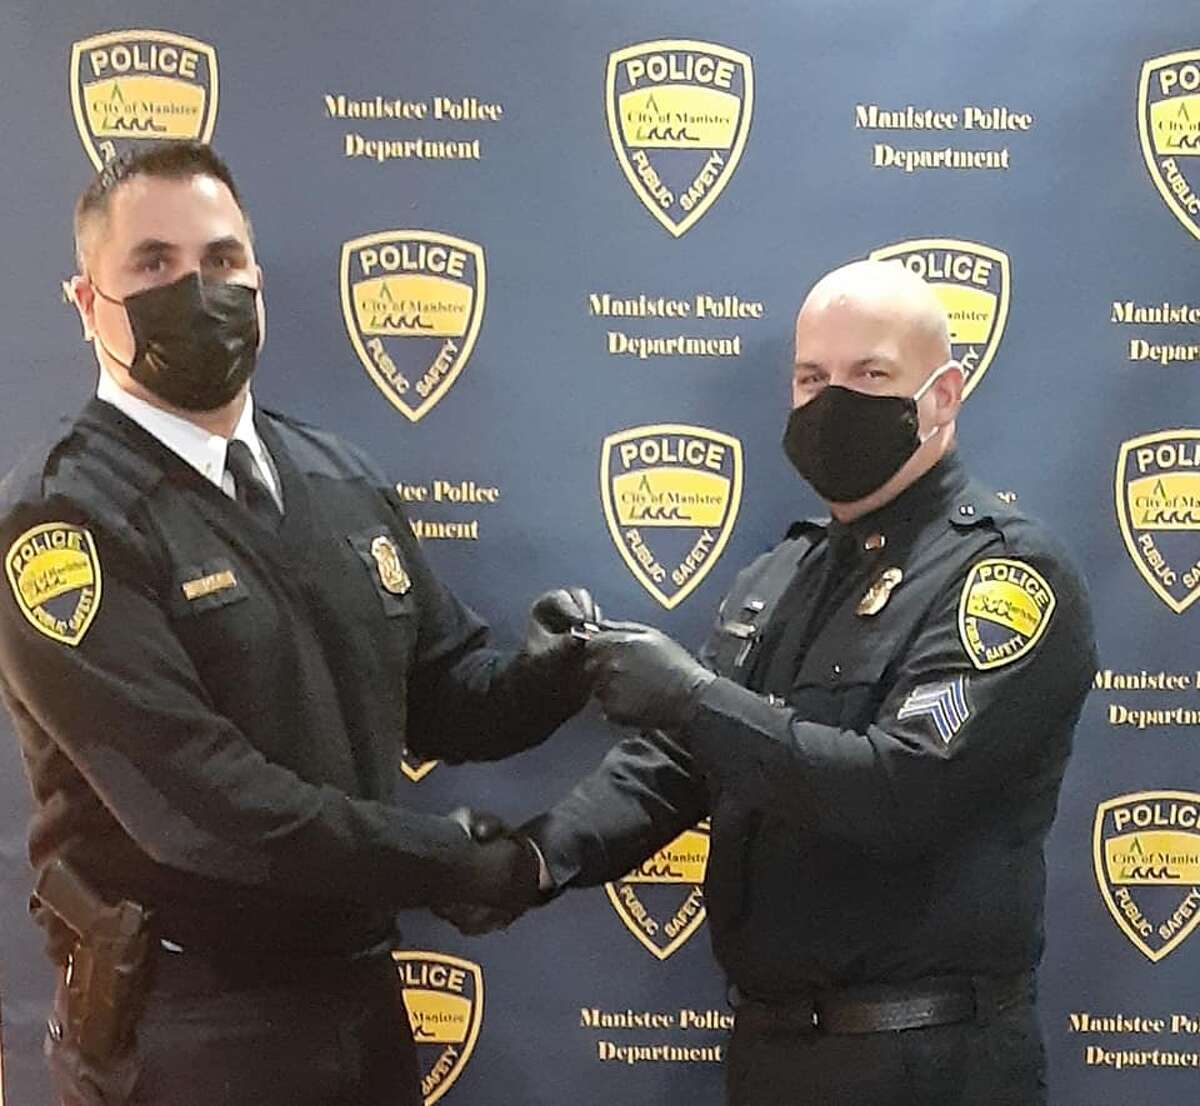 Manistee City Police Chief Josh Glass shakes hands with Sgt. Doug VanSickle's during a promotional ceremony at Manistee City Hall on Monday.